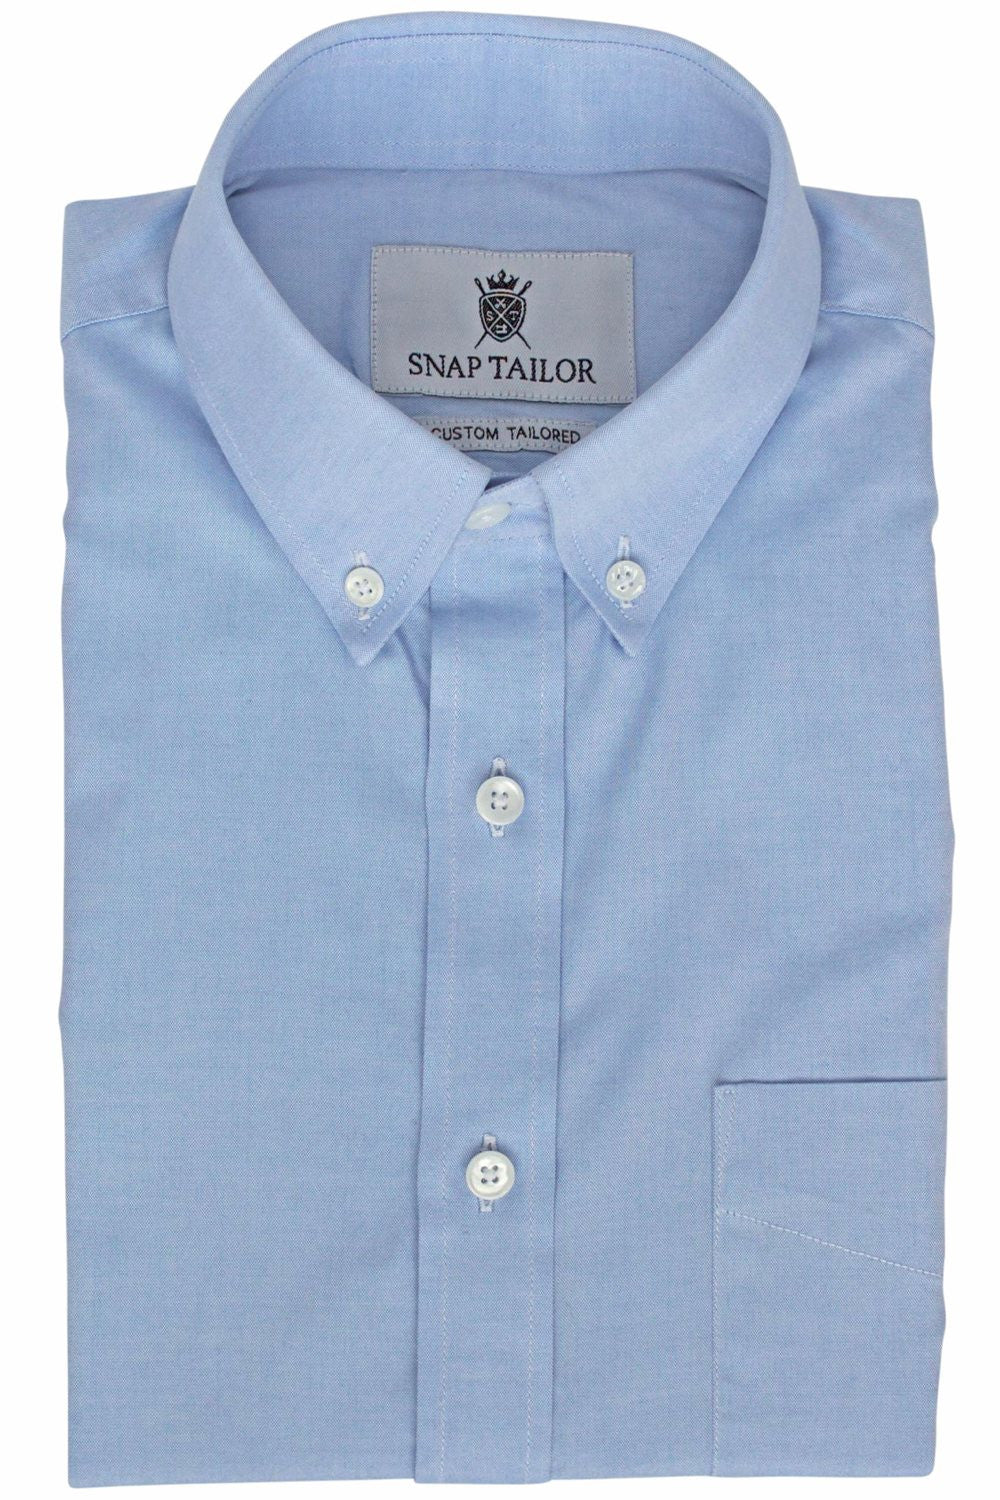 Photo of the Oxford Solid Dress Shirt in Blue